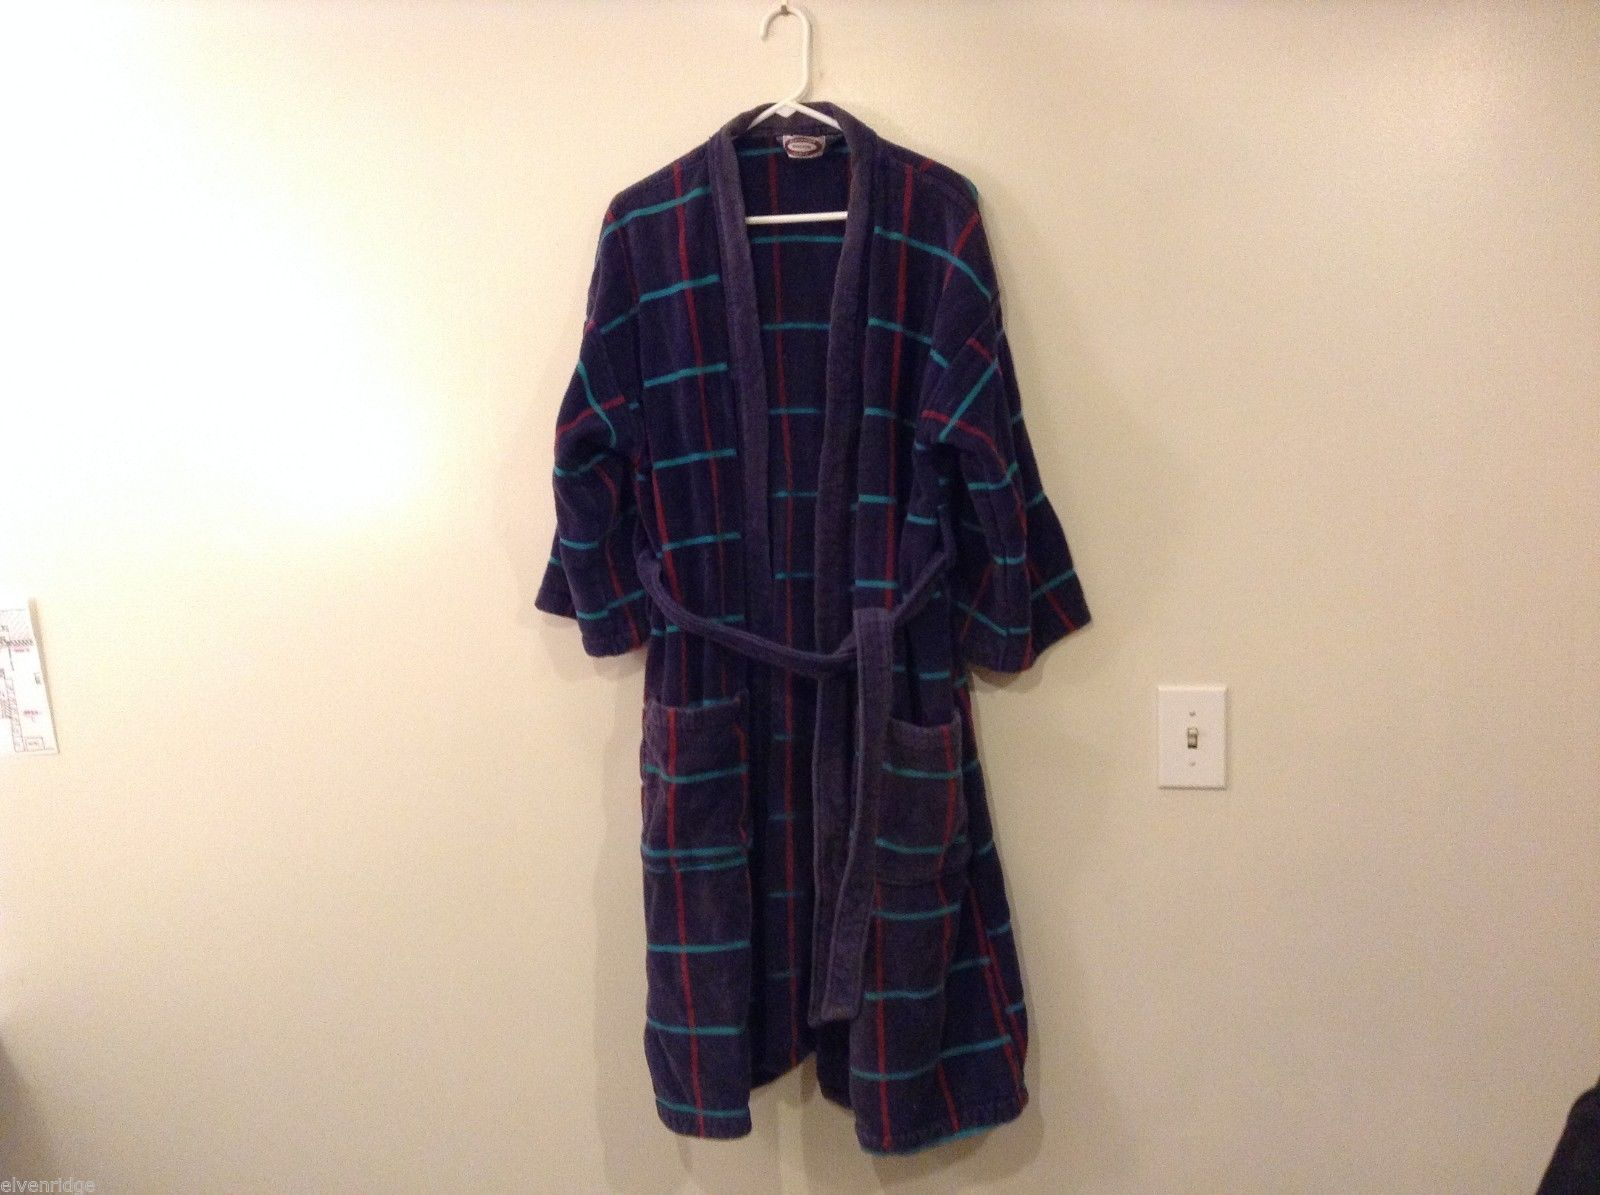 Alexander Lloyd Boston Blue Plaid Red turquoise Bath Robe 100% Cotton Size 1X